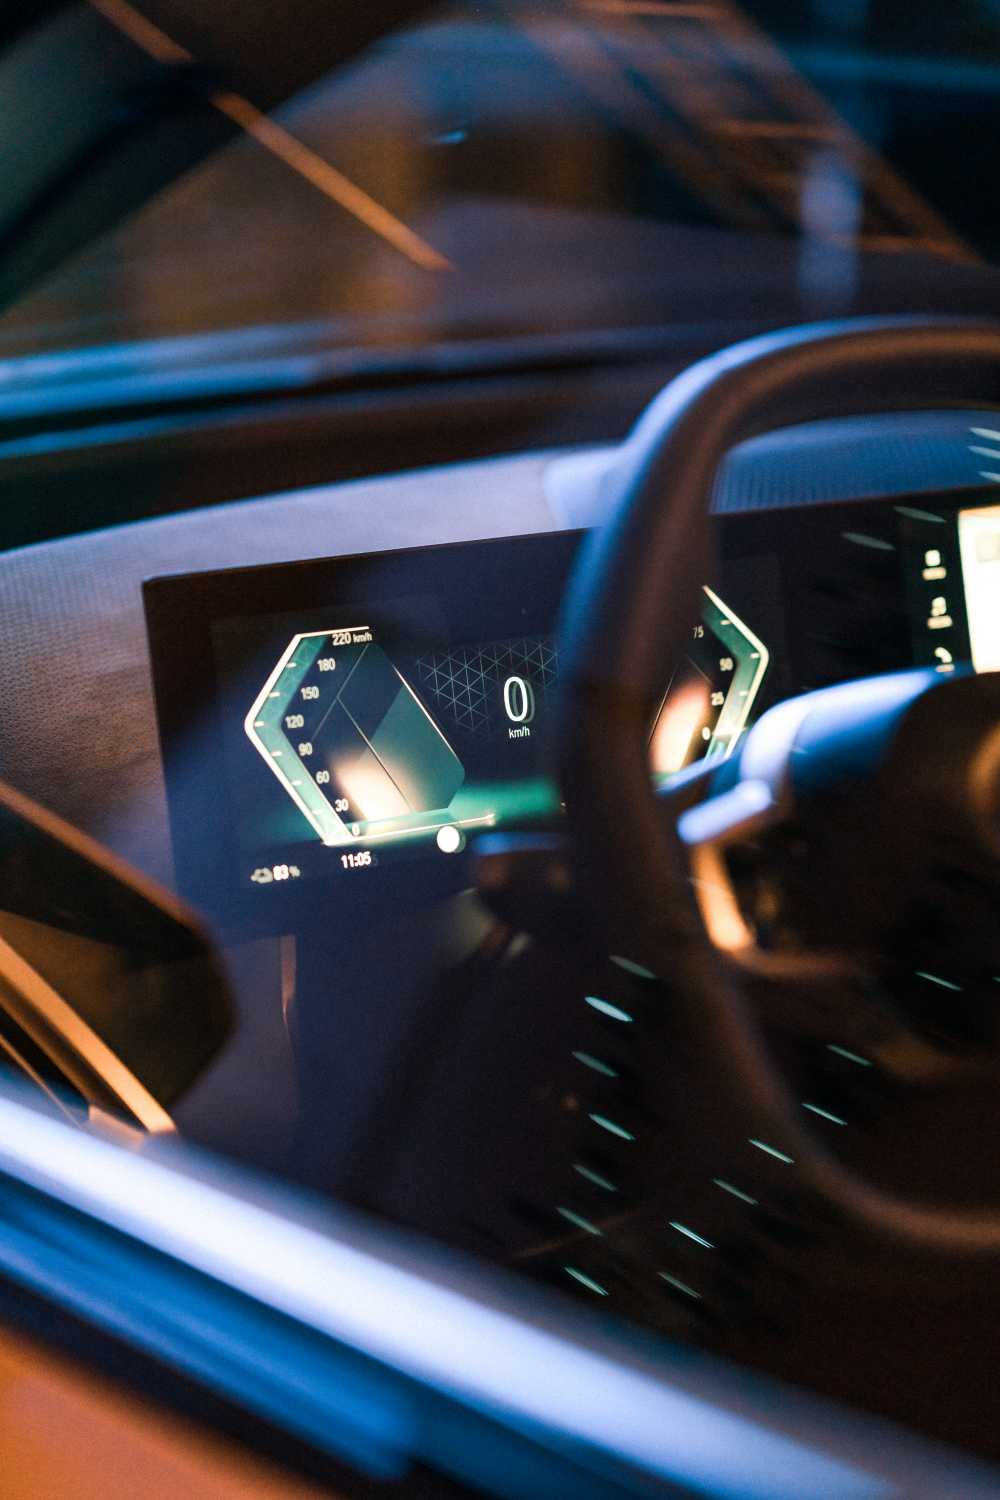 The new BMW iDrive @CES 2021. (01/2021)